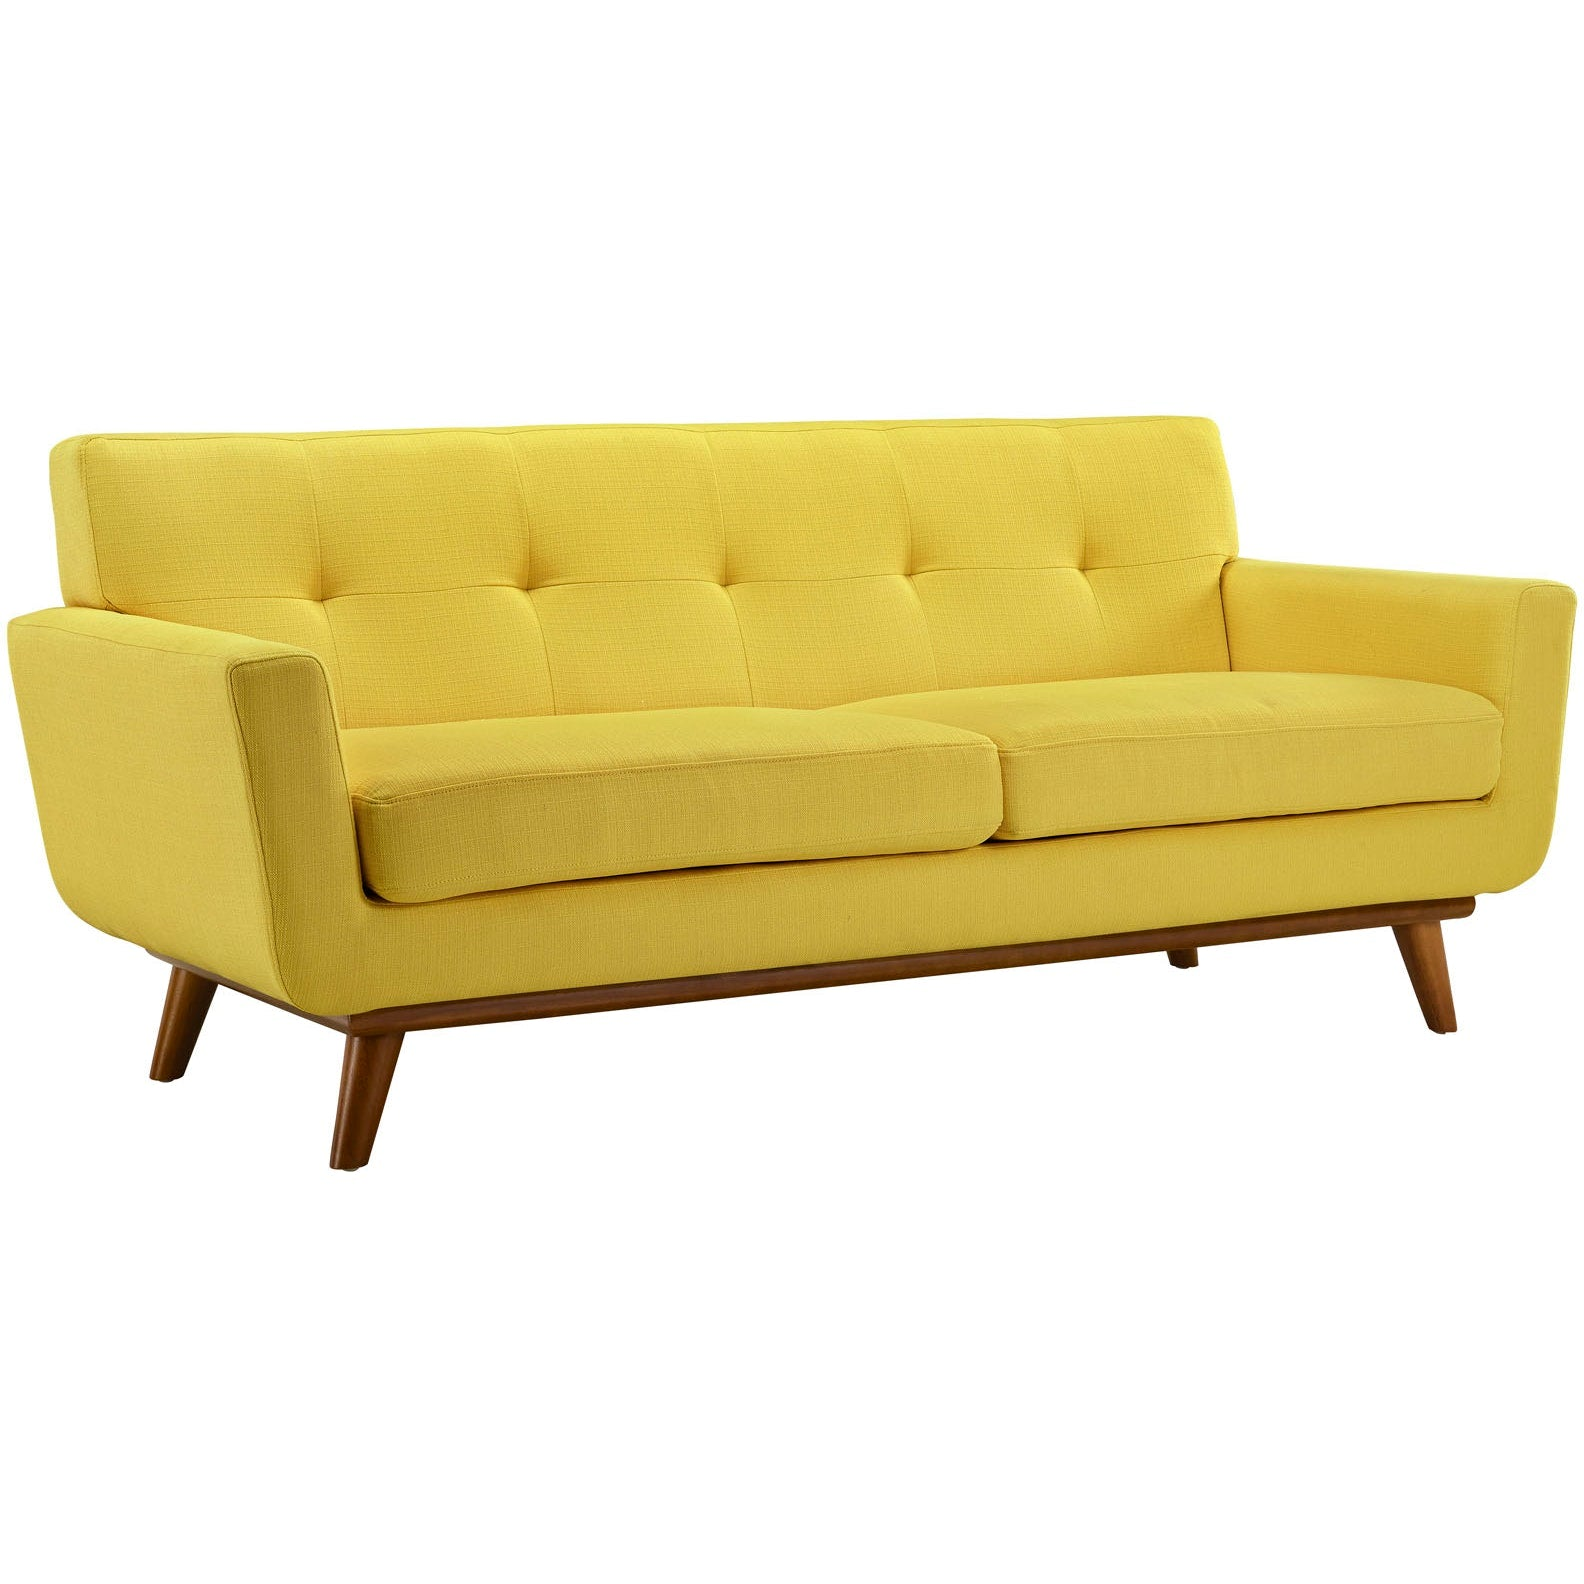 Engage Loveseat and Sofa Set of 2 - Sunny